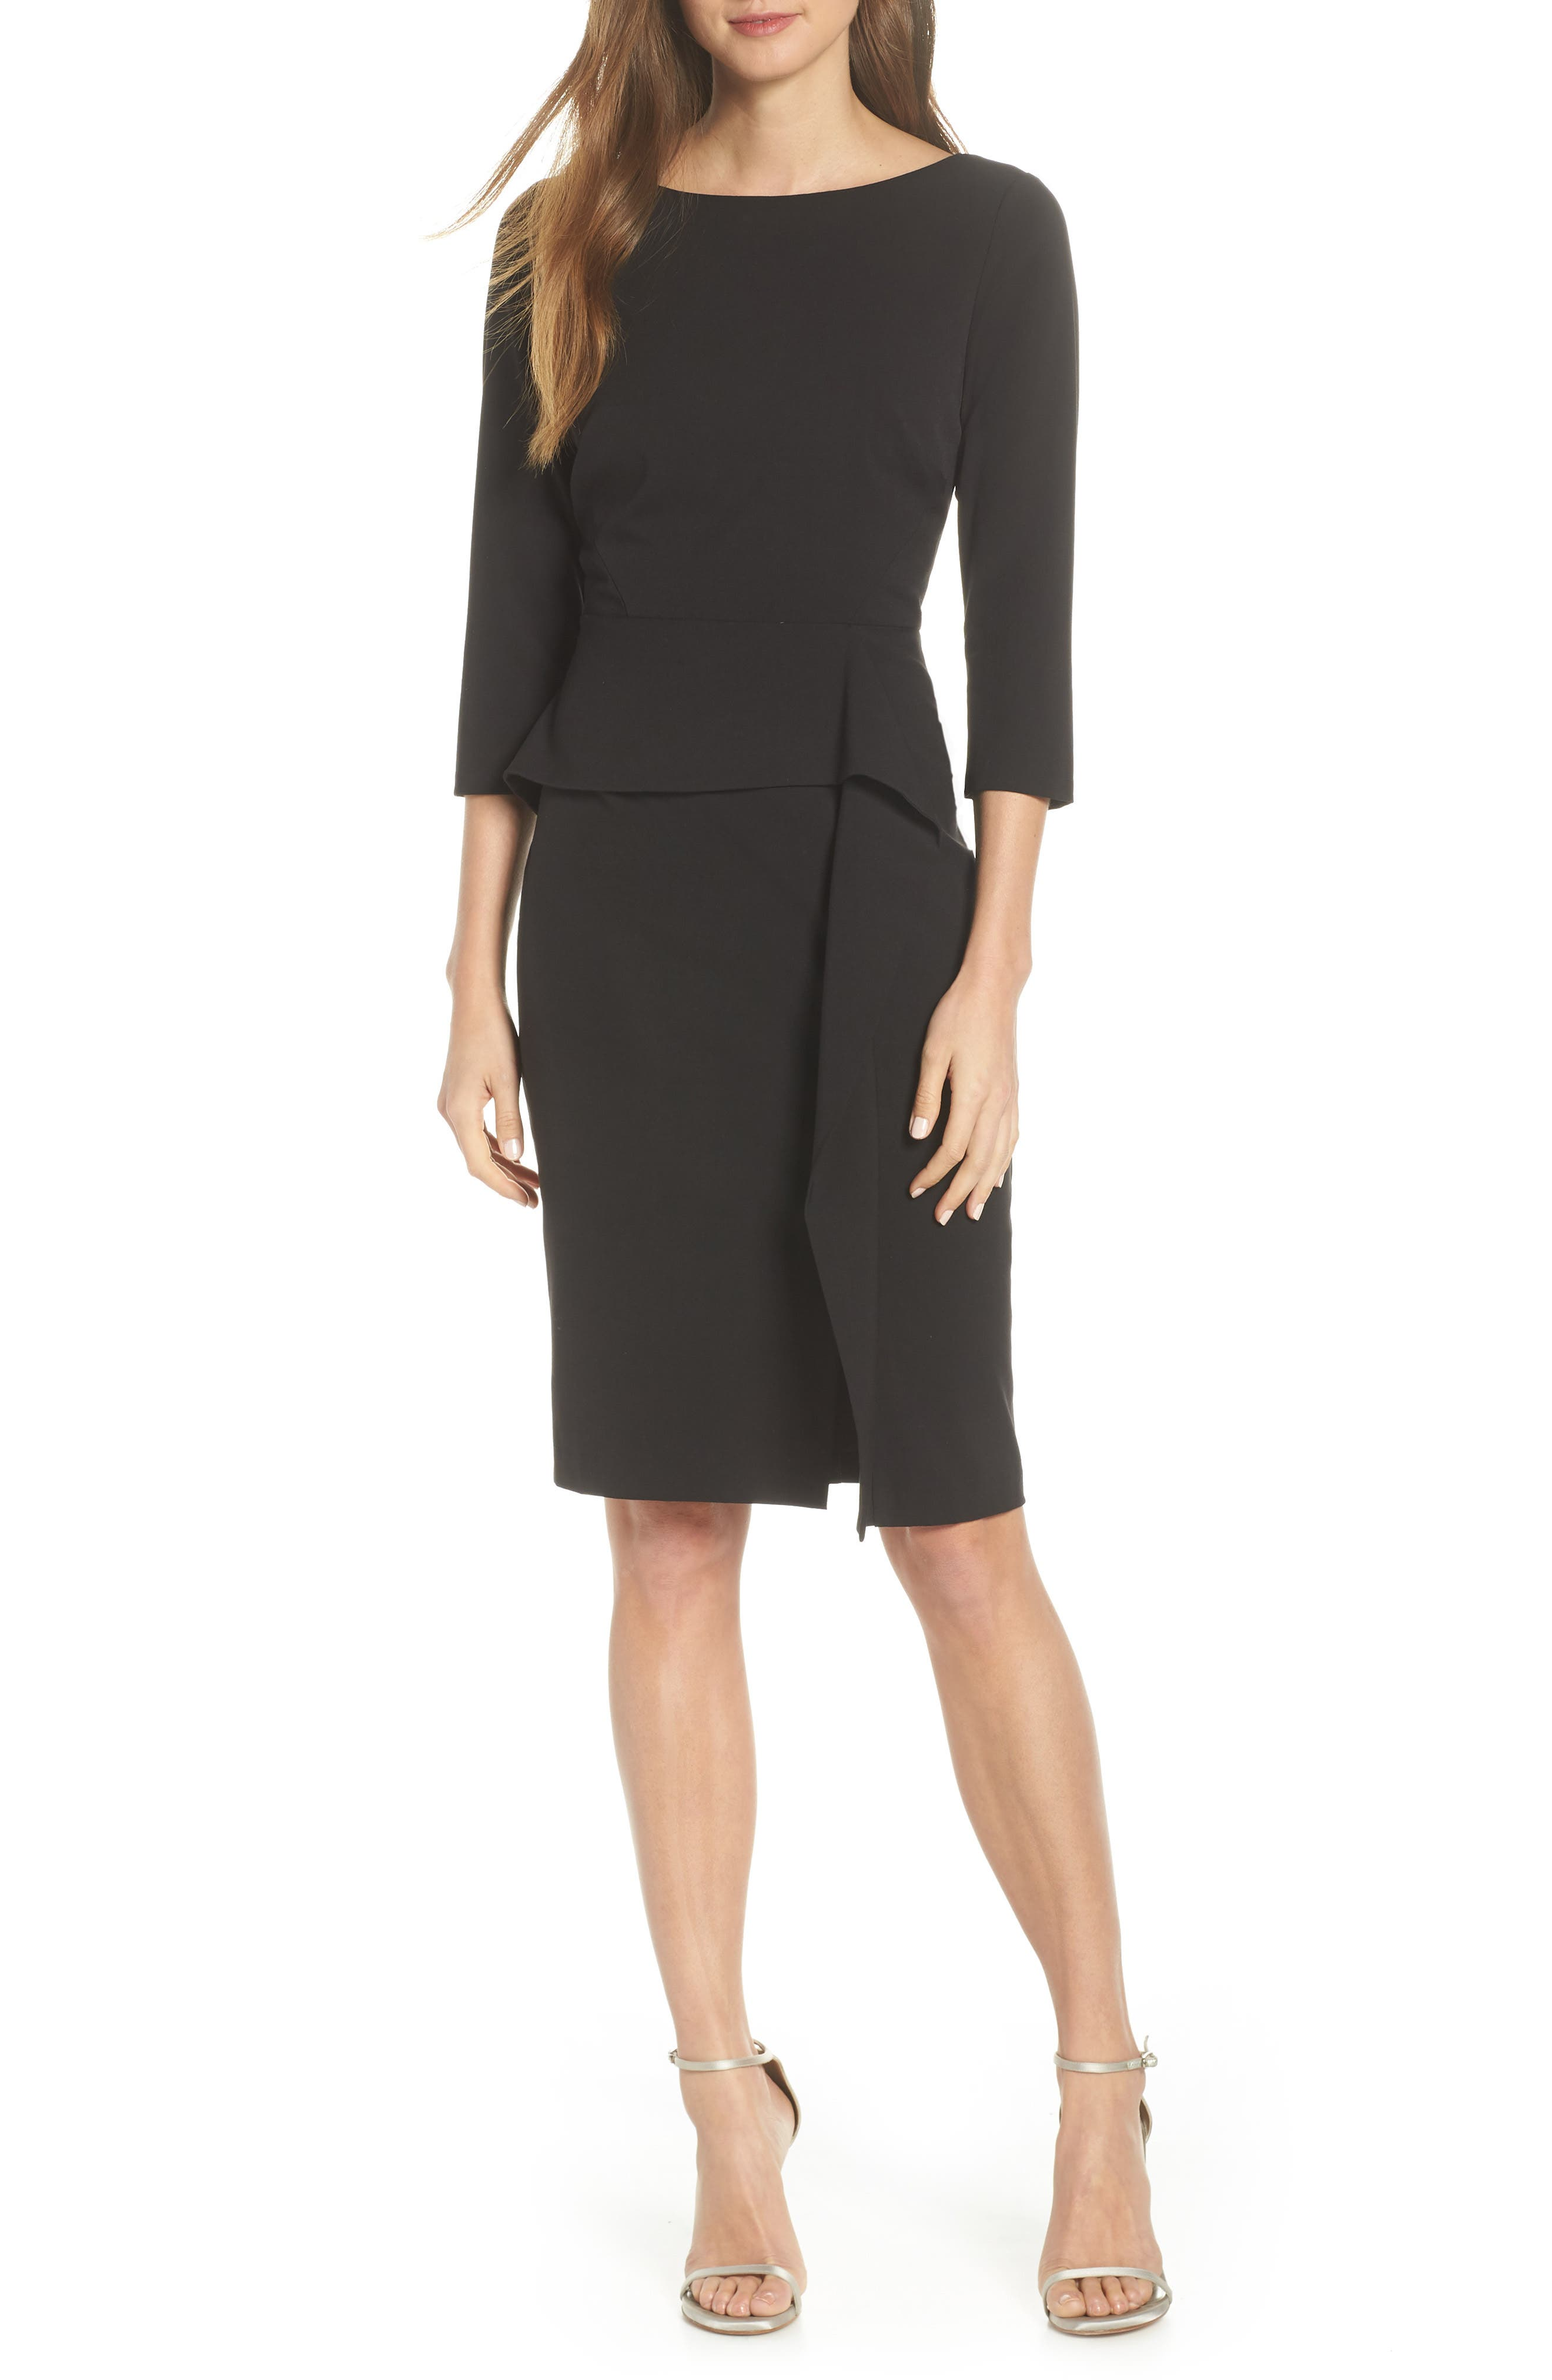 VINCE CAMUTO Angled Ruffle Sheath Dress, Main, color, BLACK